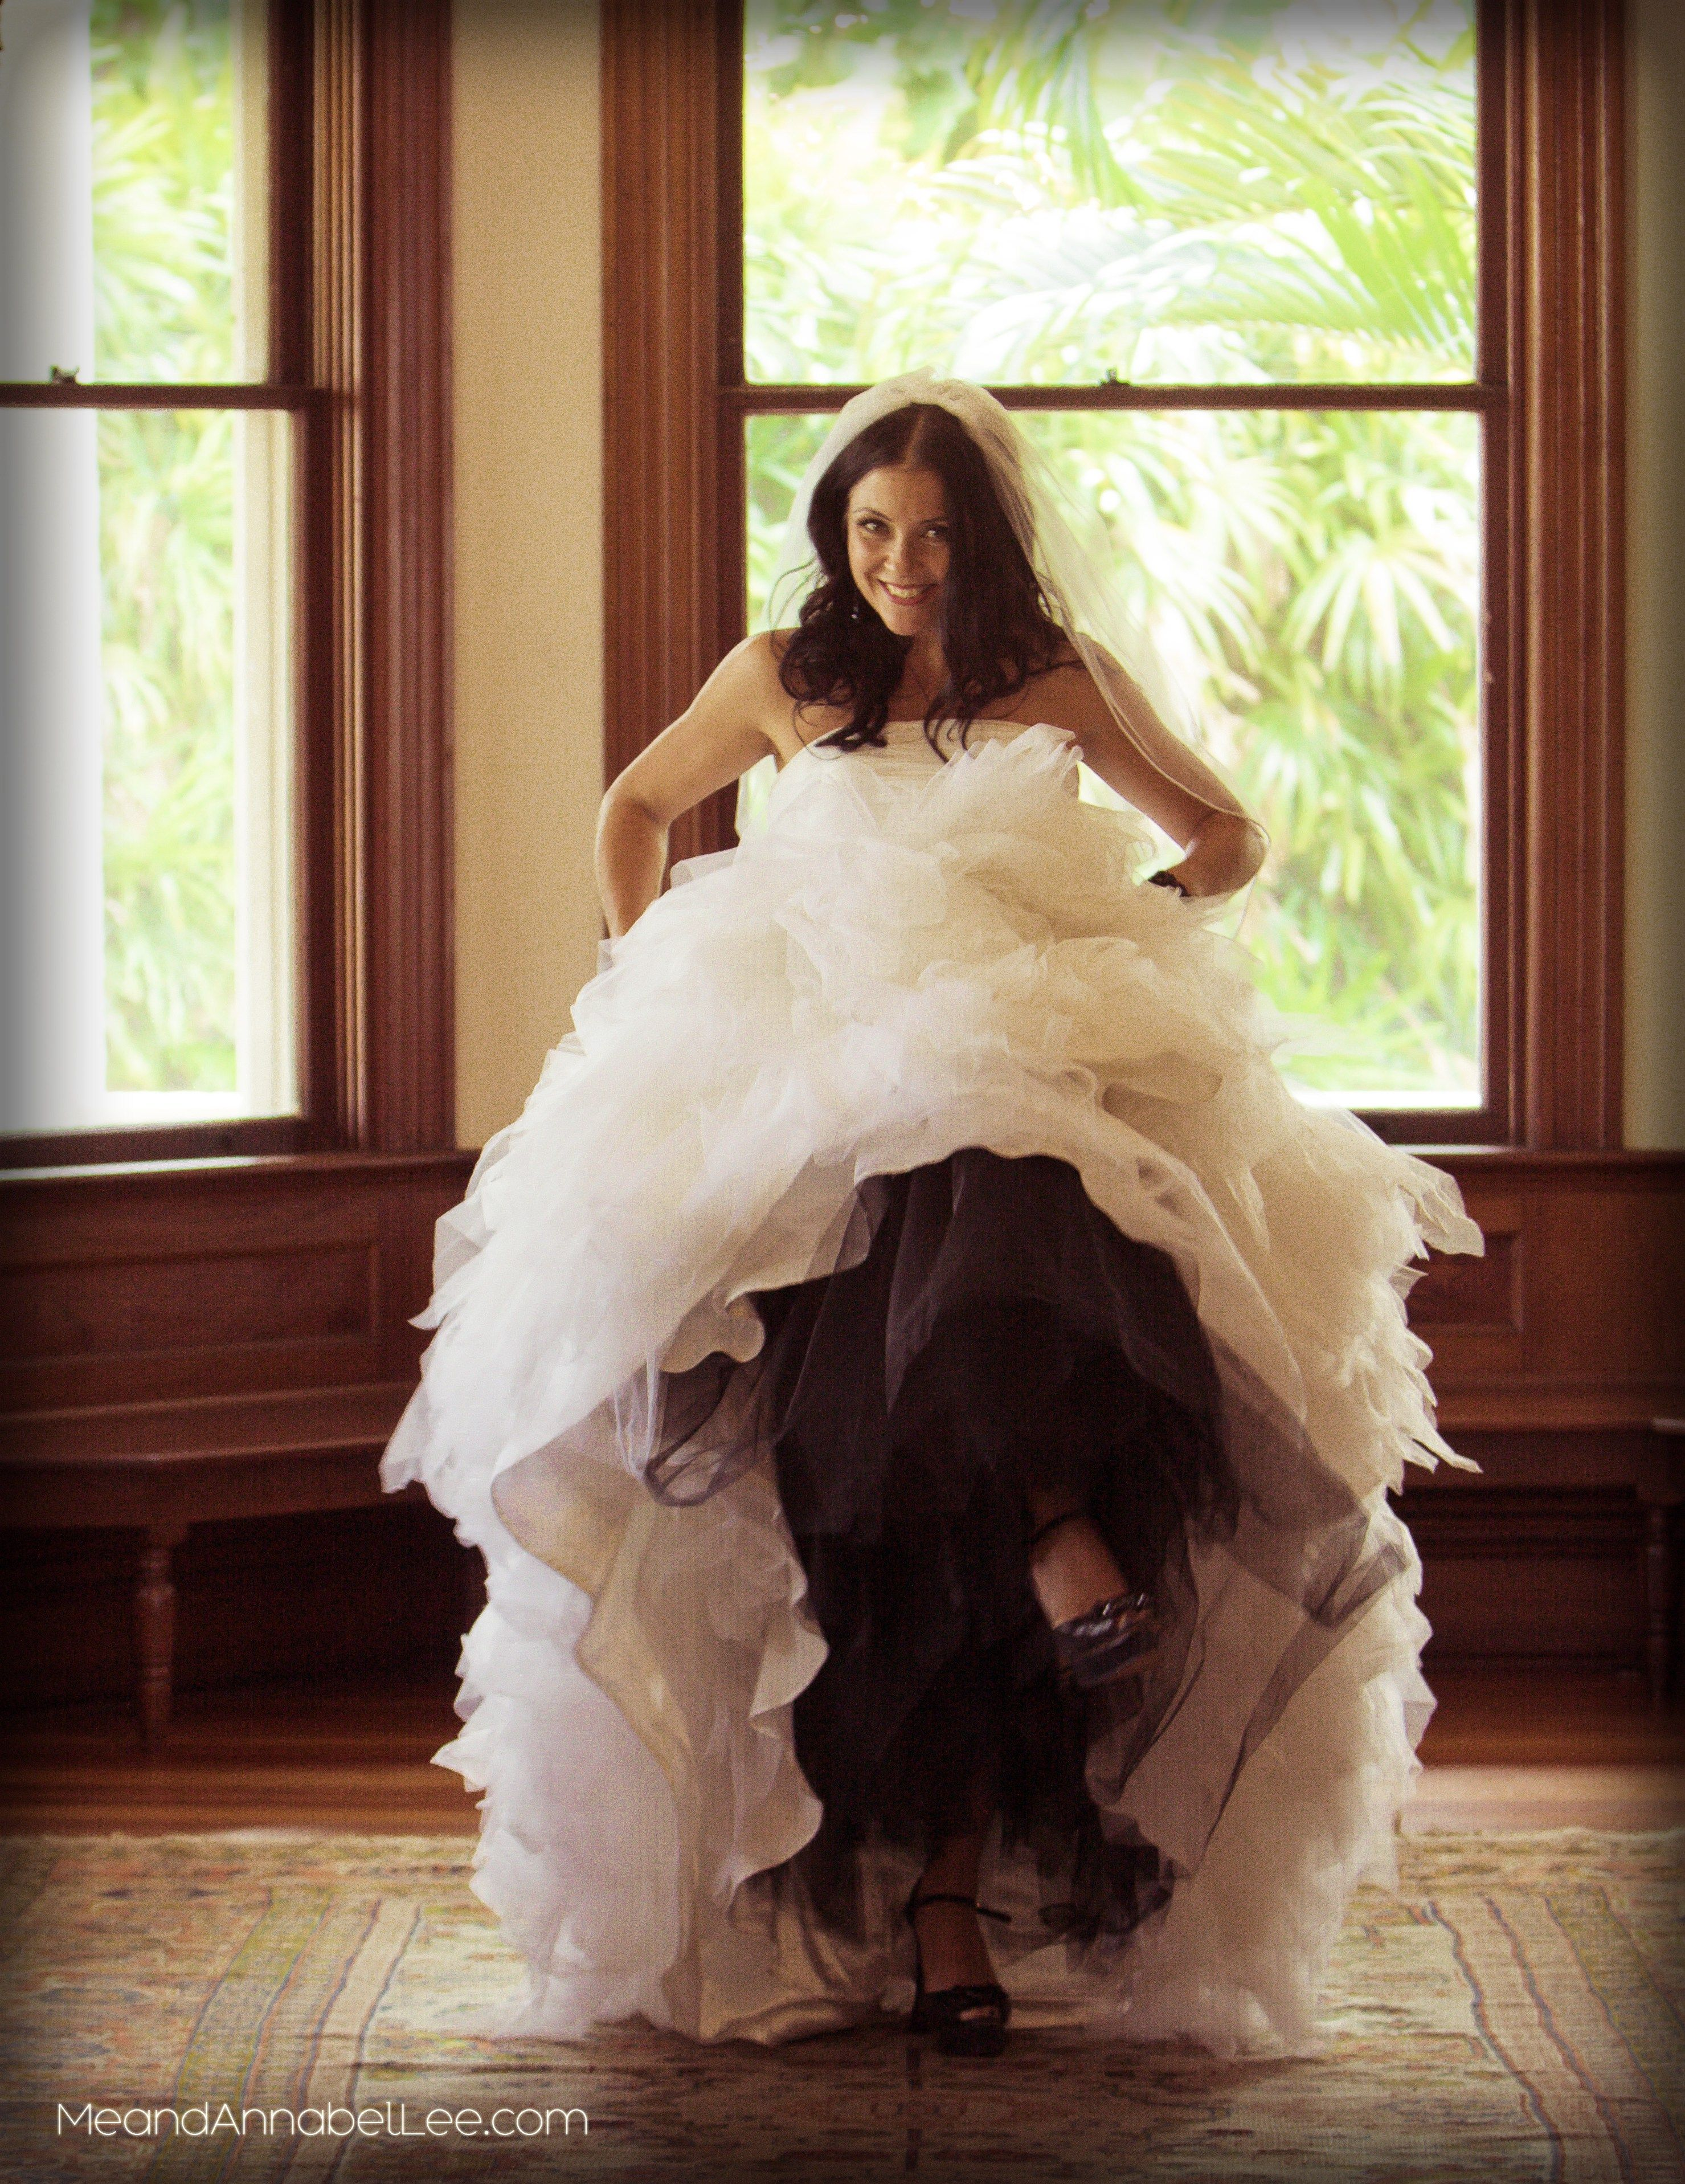 Gothic Bride Adding Black Accessories To A White Wedding Dress Me And Annabel Lee Gothic Bride Black Wedding Dress Gothic Gothic Wedding Dress